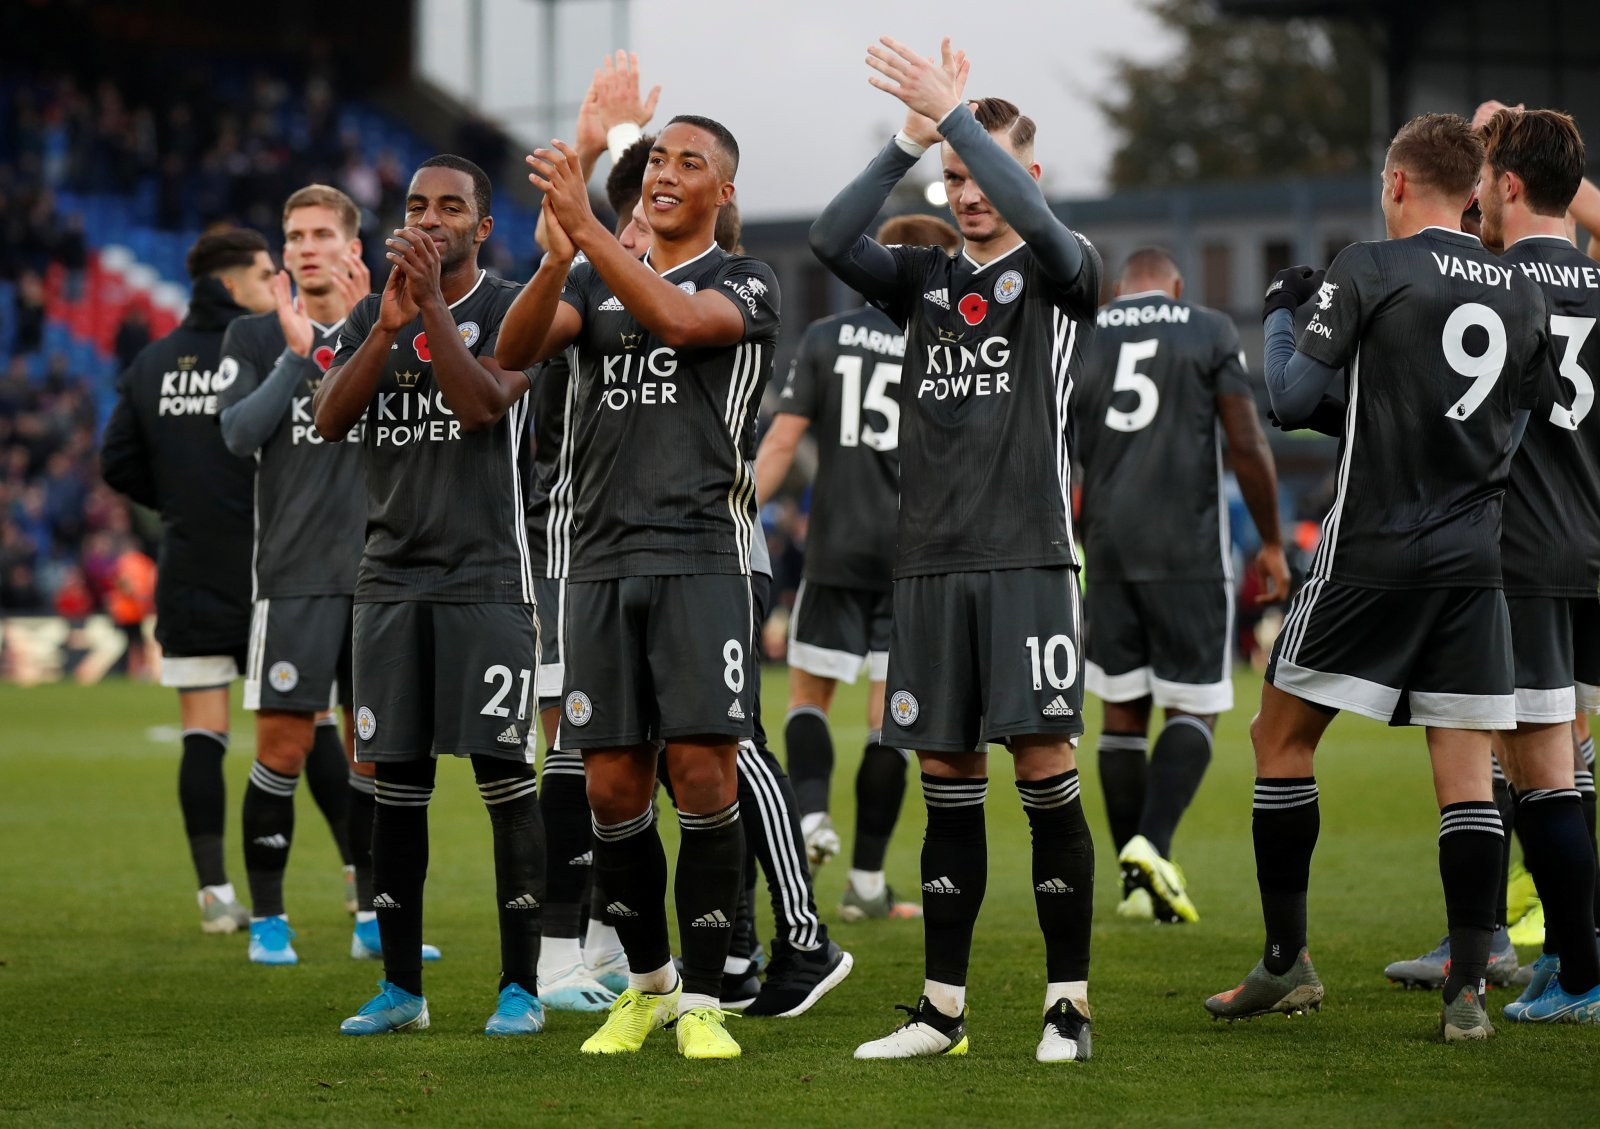 Leicester City: Video inspires many fans to think Youri Tielemans is a future club captain